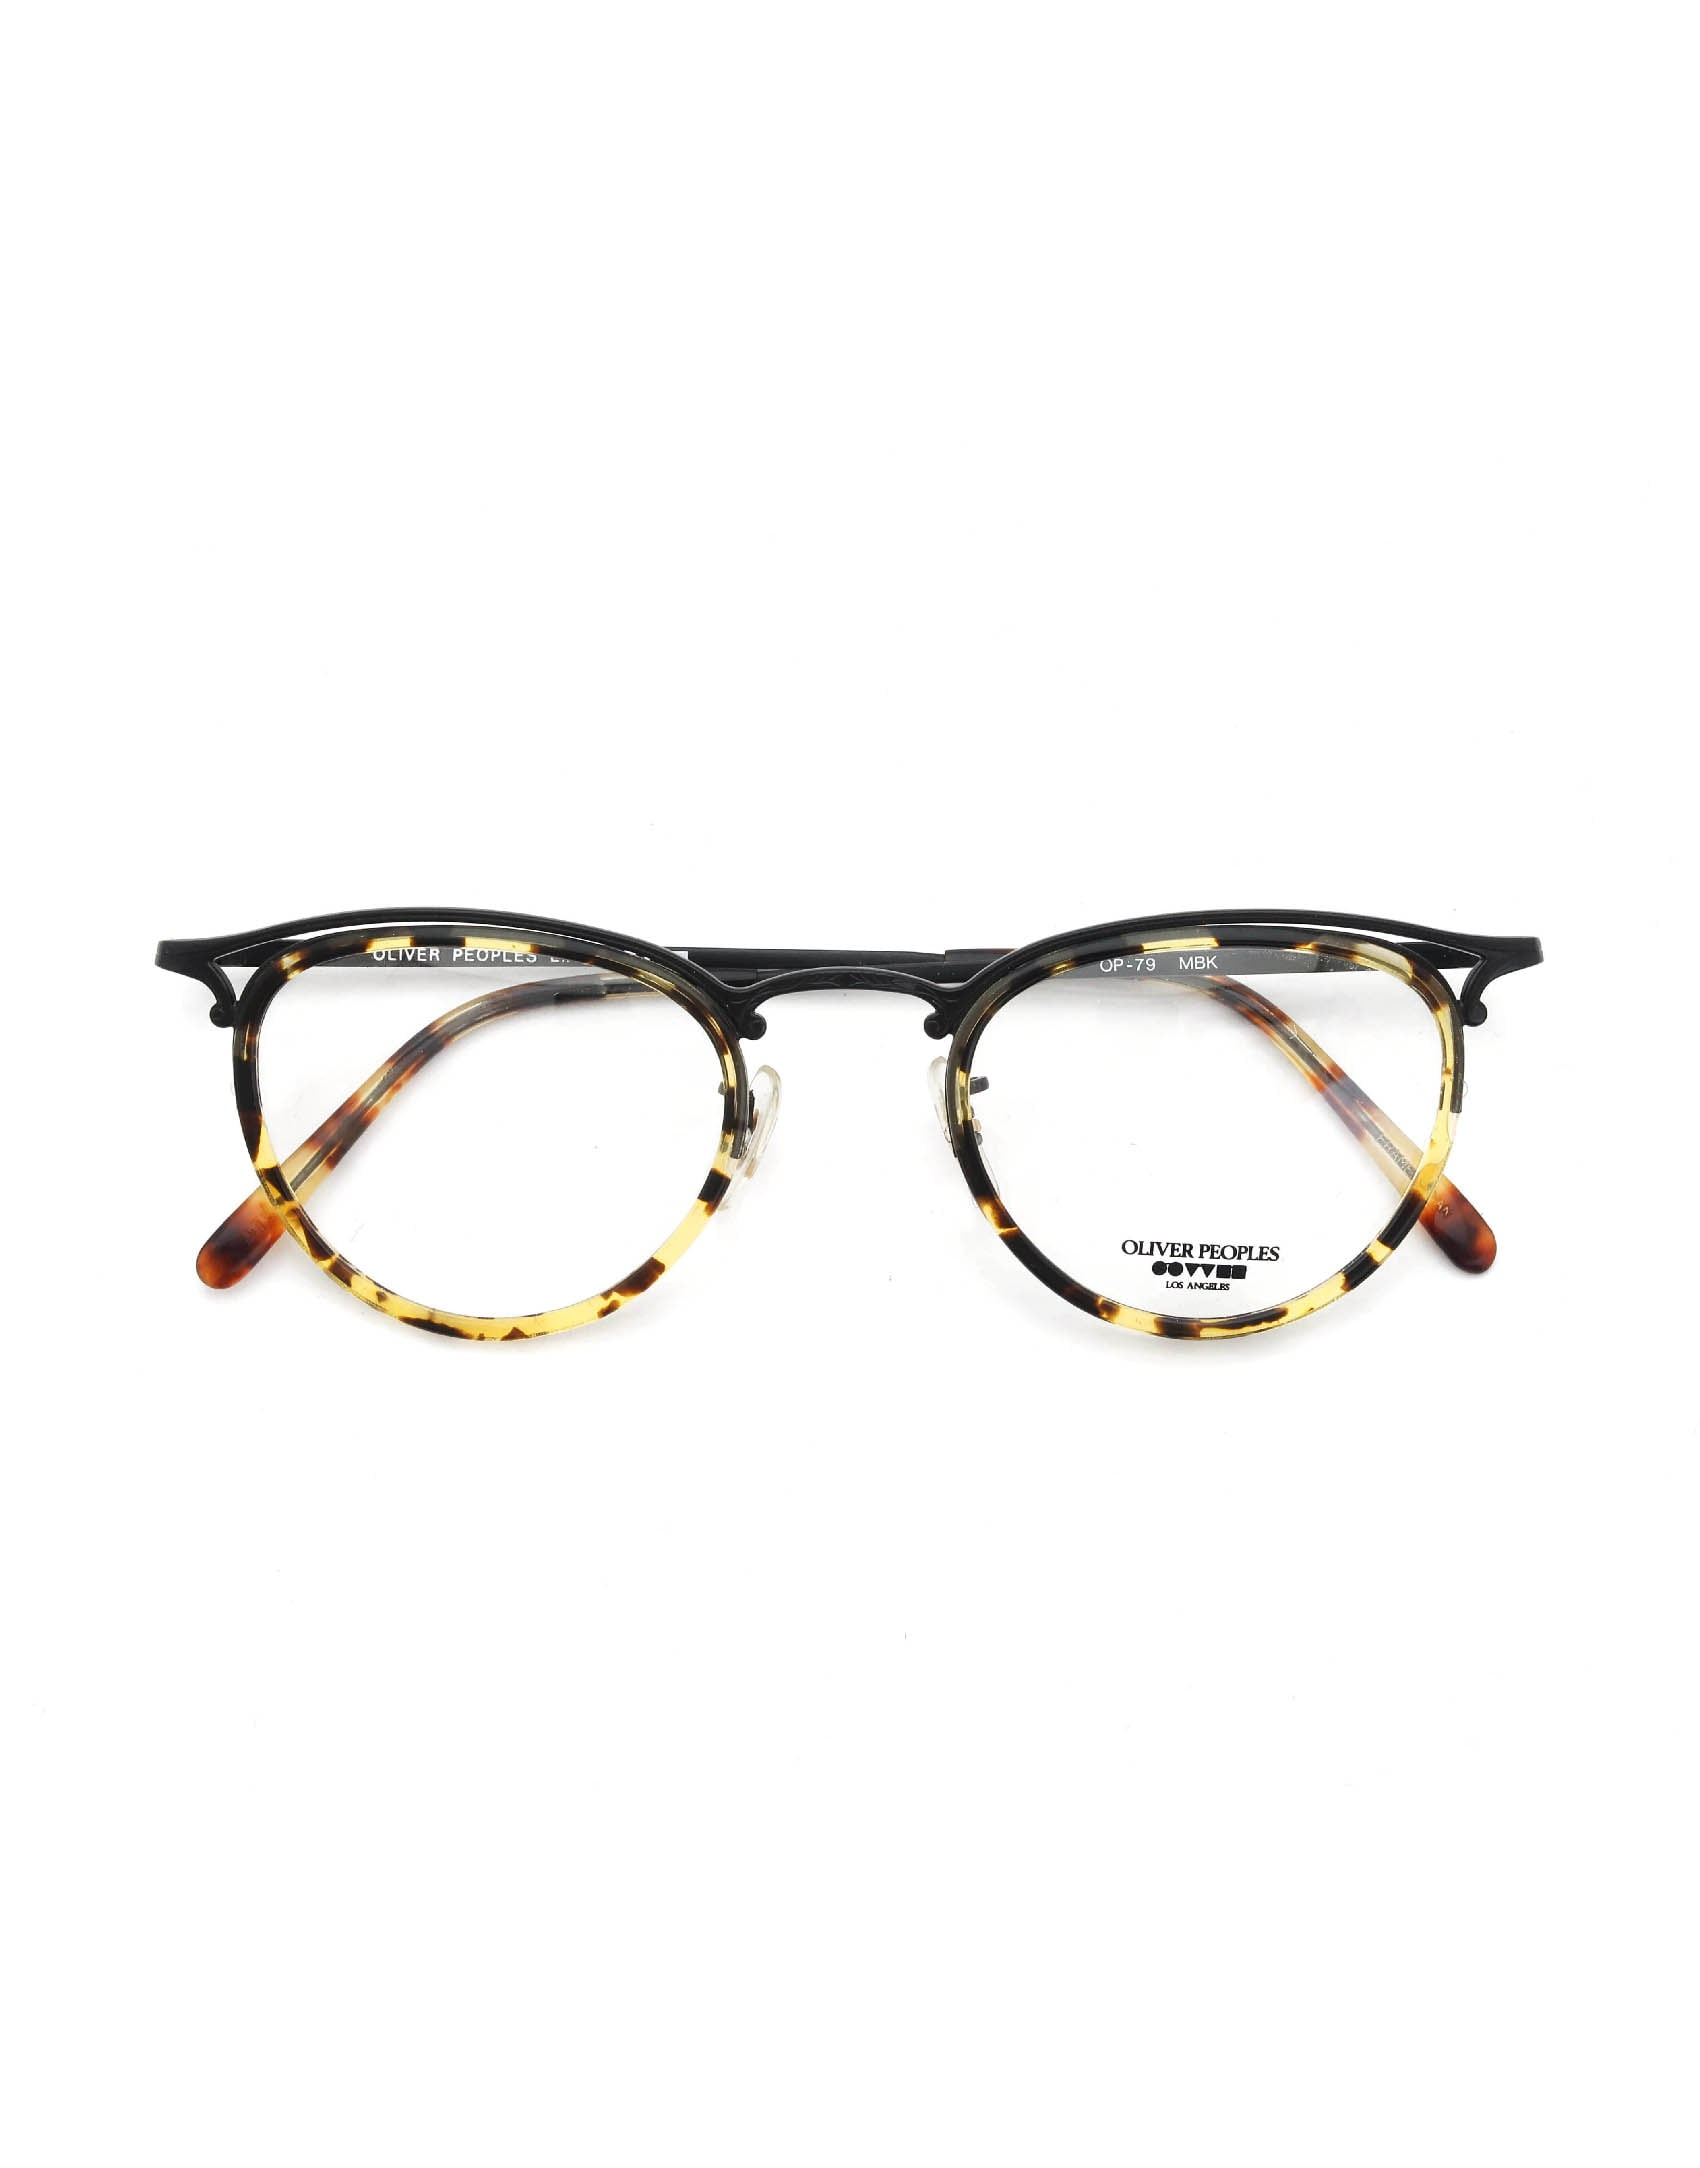 OLIVER PEOPLES archive OP-79 MBK-DTBK